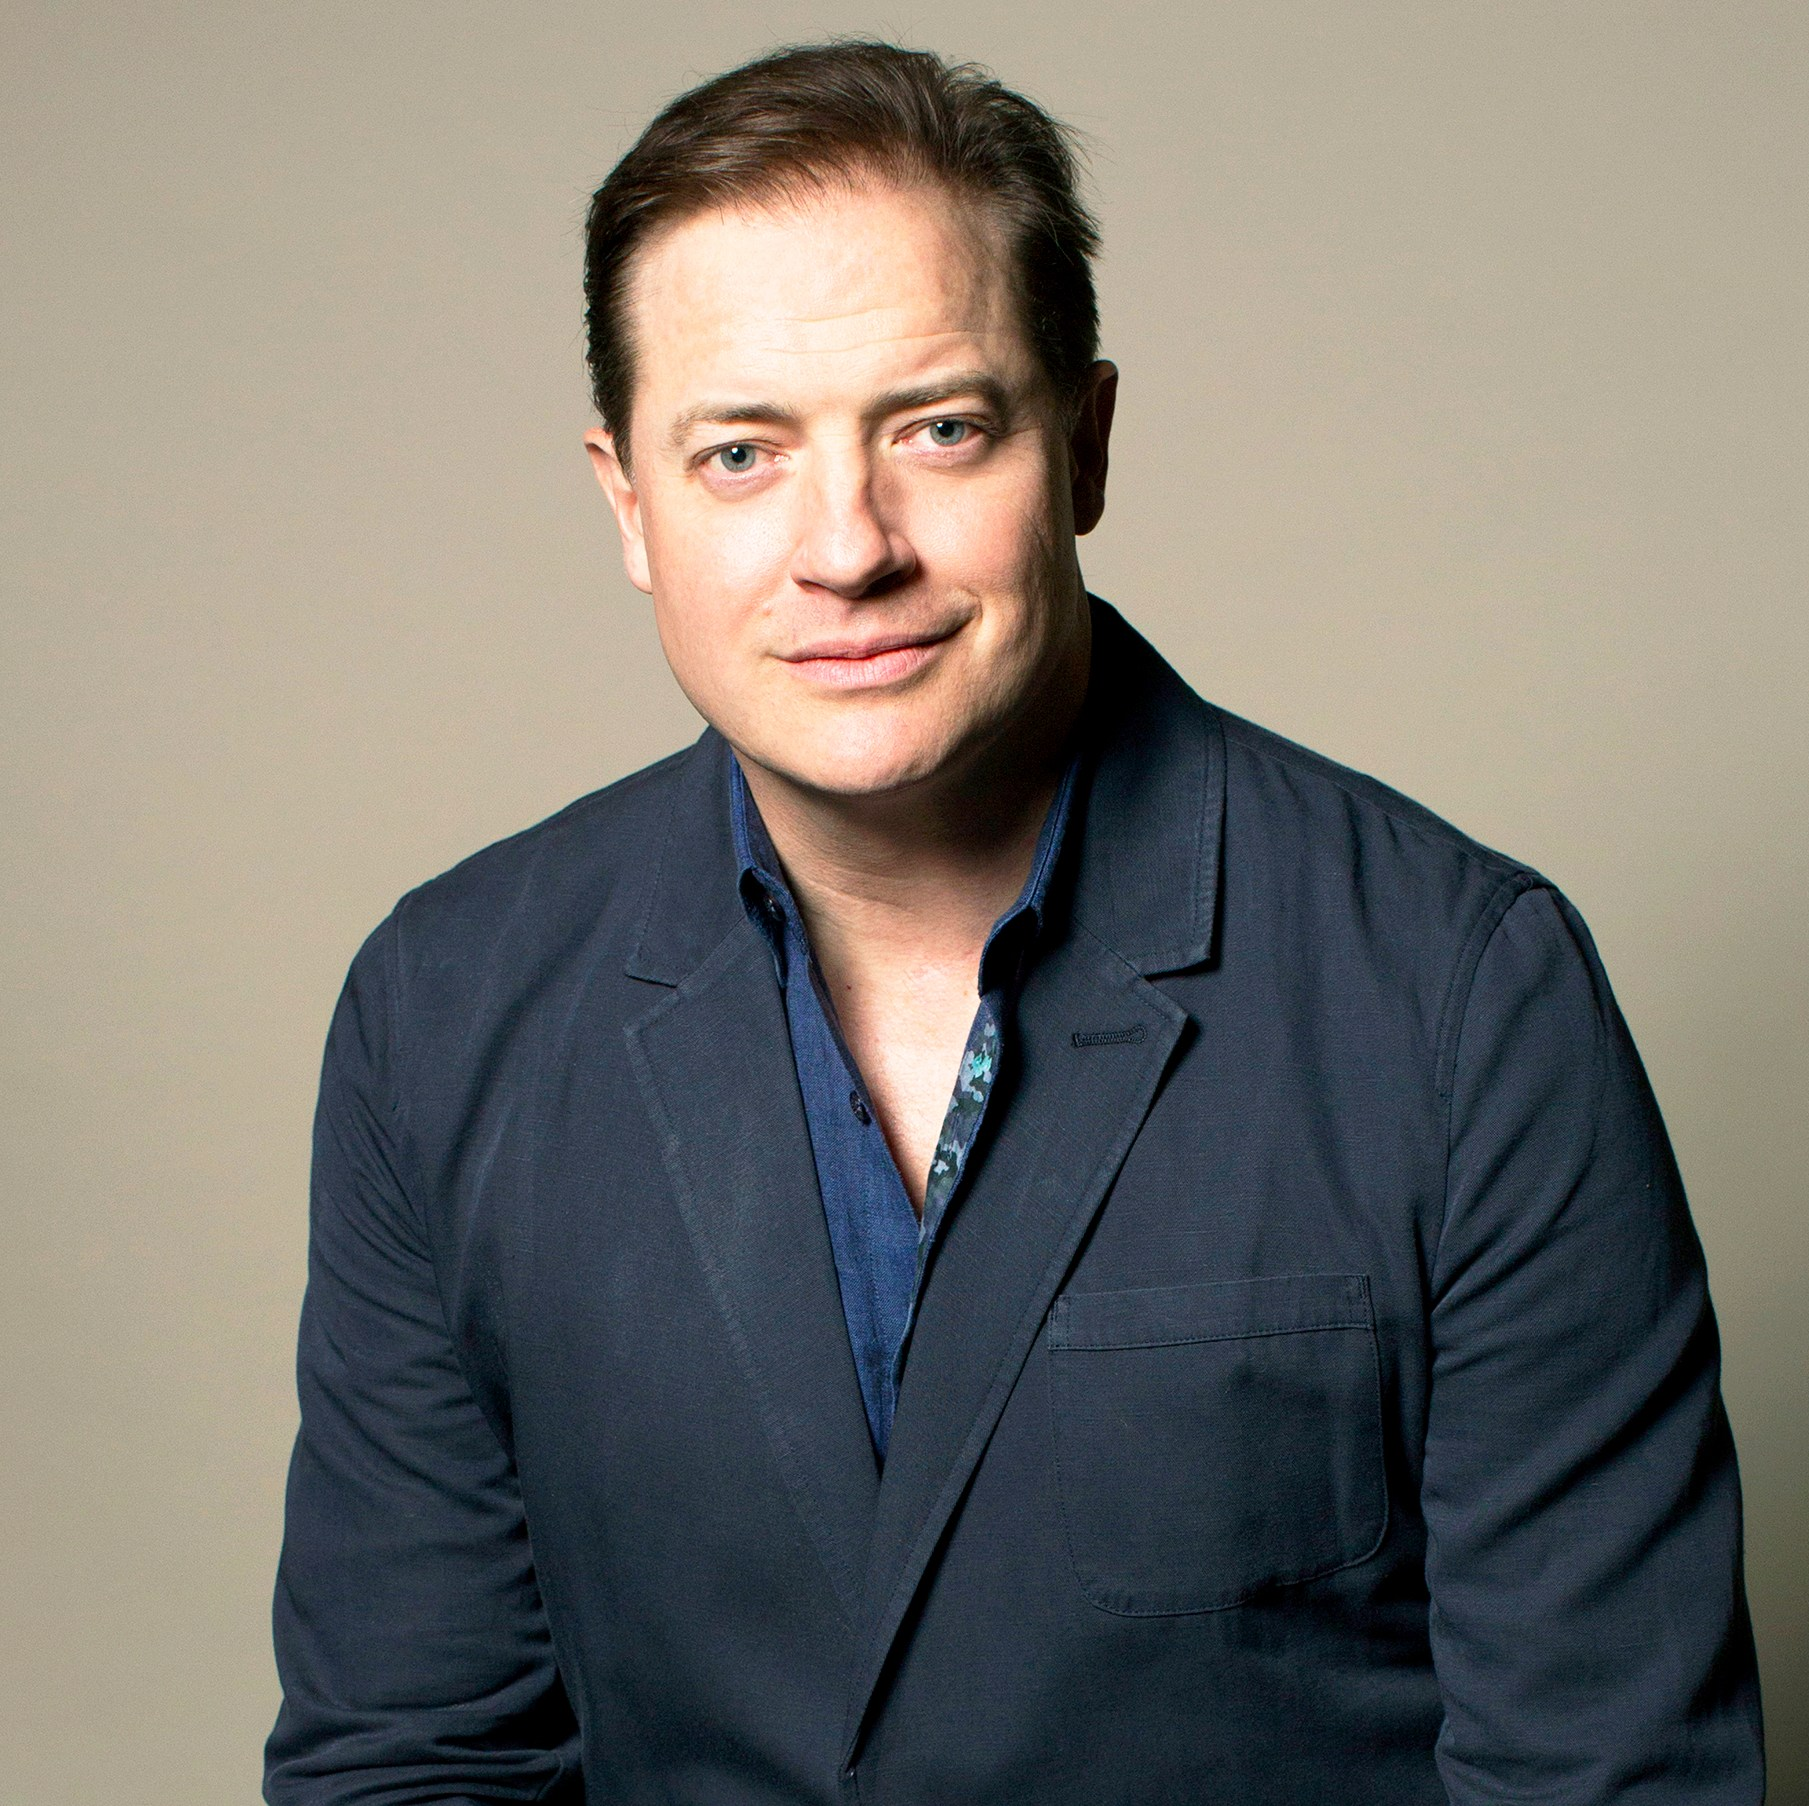 Brendan Fraser during the 2017 Tribeca Film Festival at Tribeca Grill Loft in New York City.